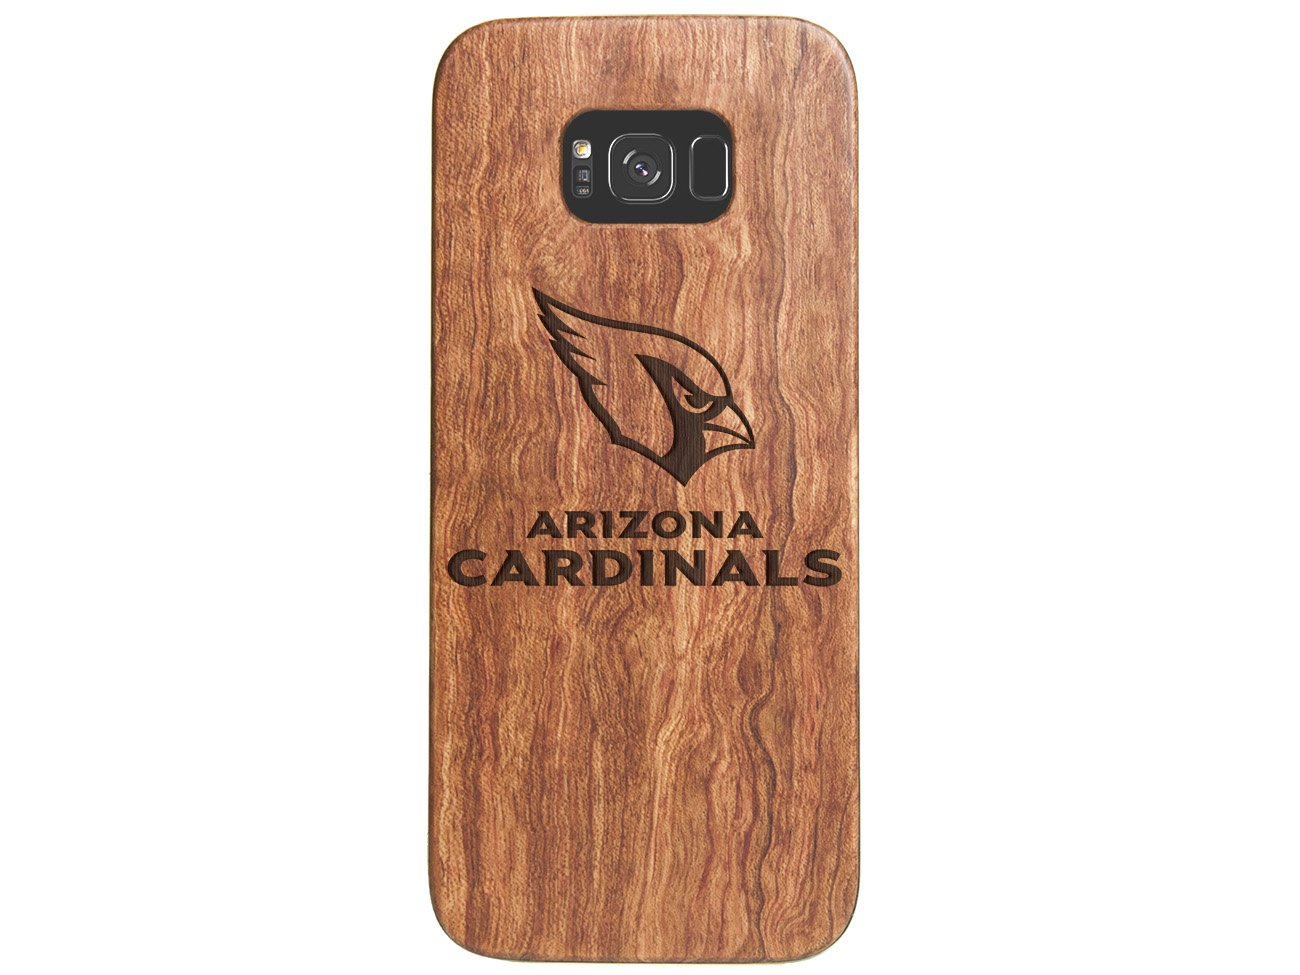 Arizona Cardinals Galaxy S8 Plus Case